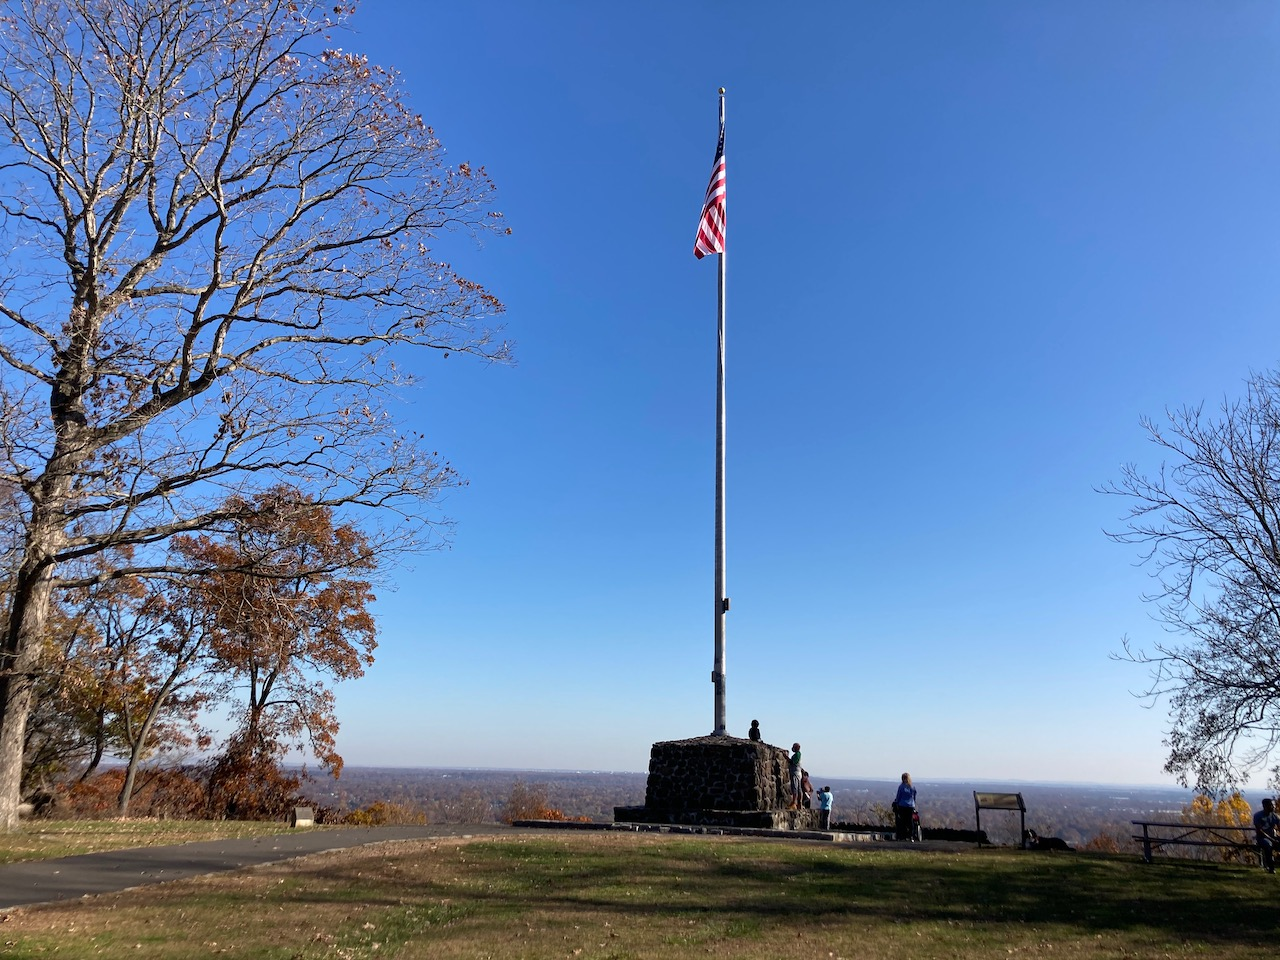 View of marker with flagpole and American flag.